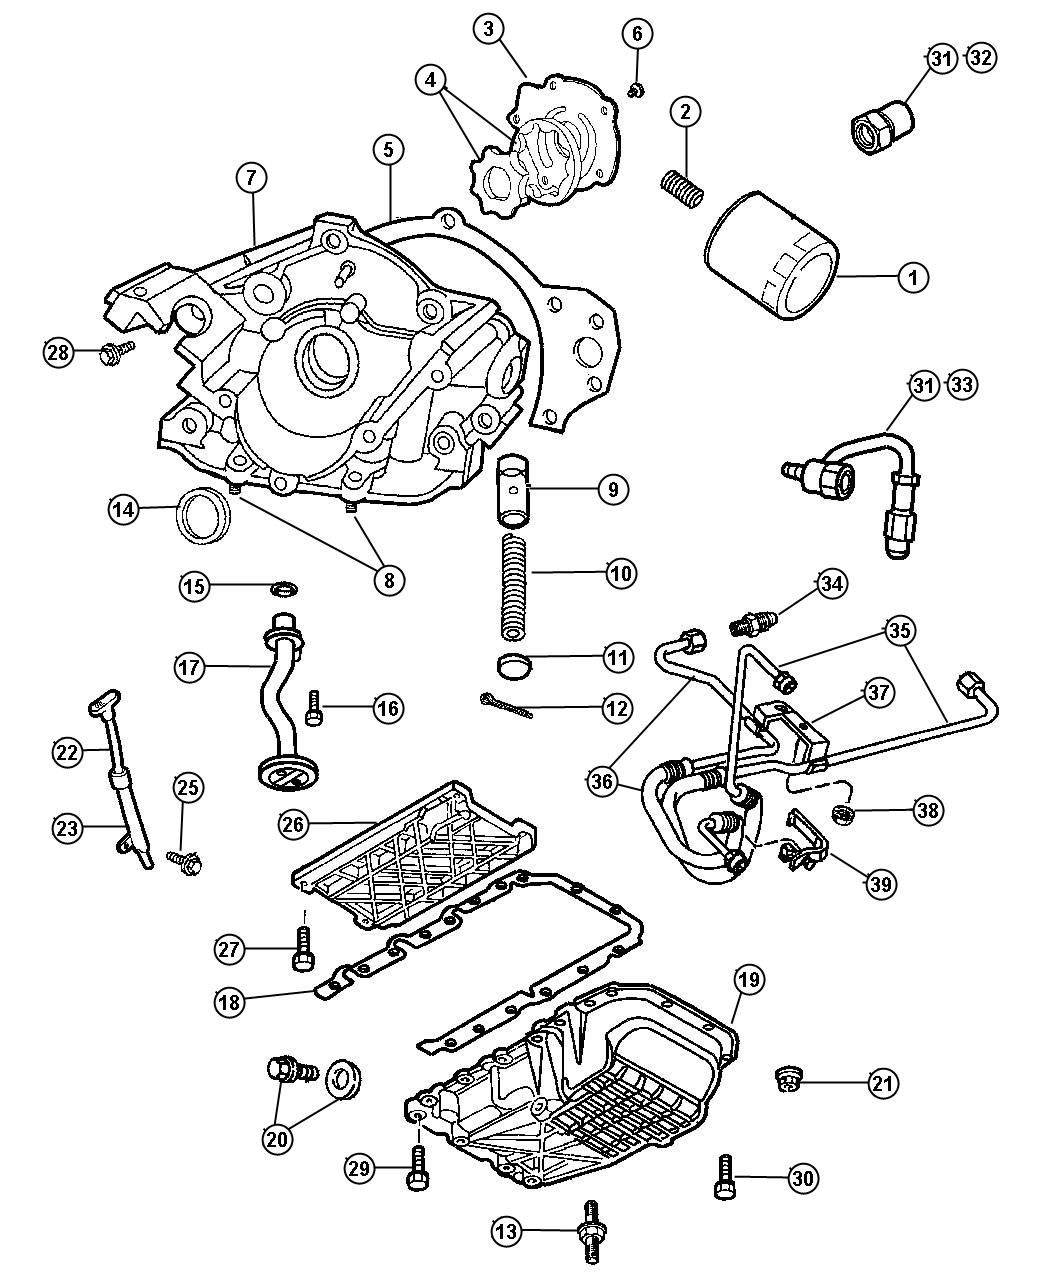 2000 dodge caravan belt diagram 2002 gmc sierra radio wiring timing neon stratus intrepid html